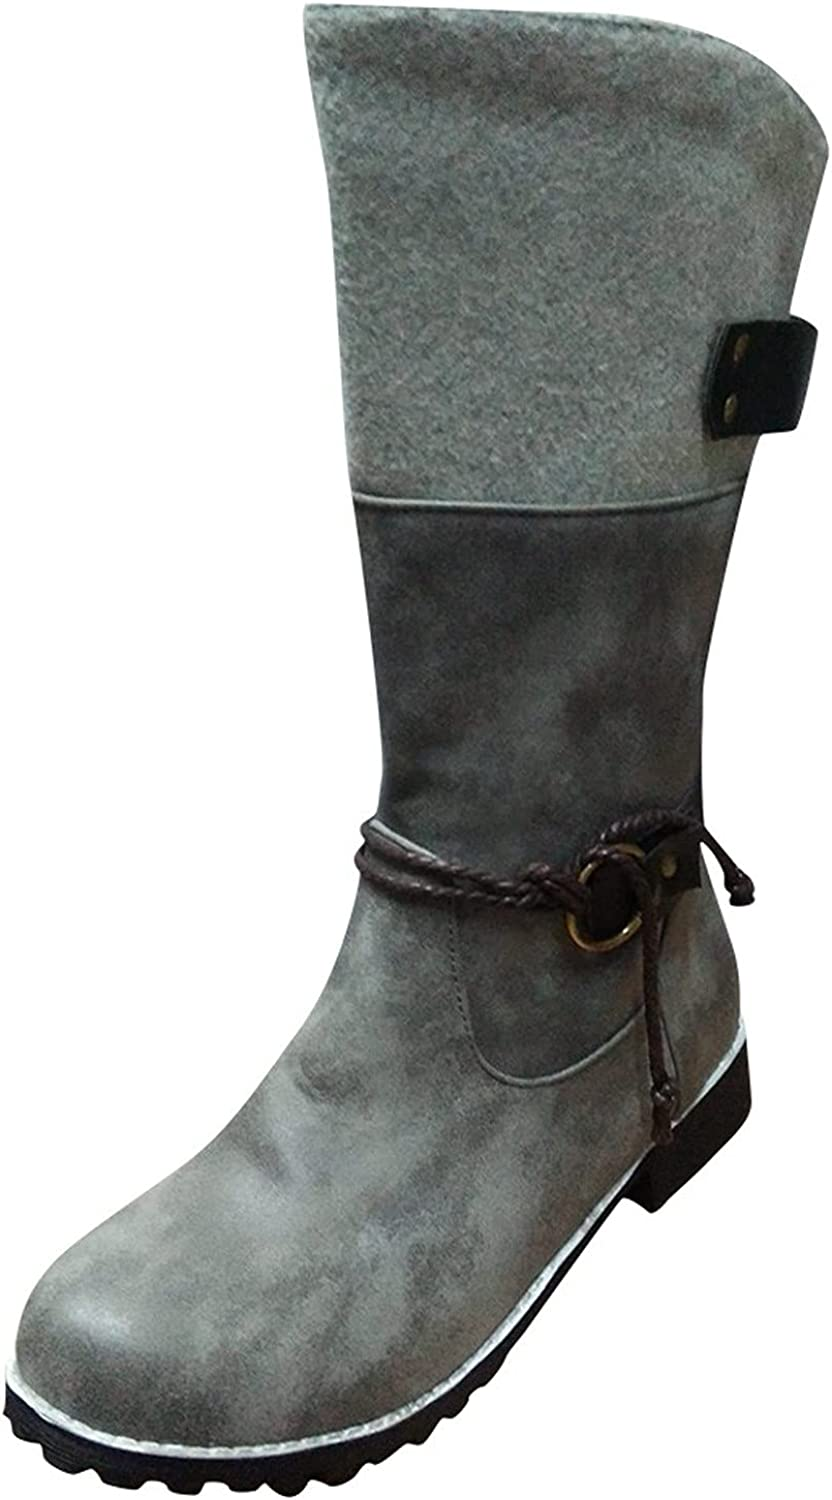 Cowboy 2021 Boots for Women SEAL limited product Buckle Round Toe Zipper Side Winter